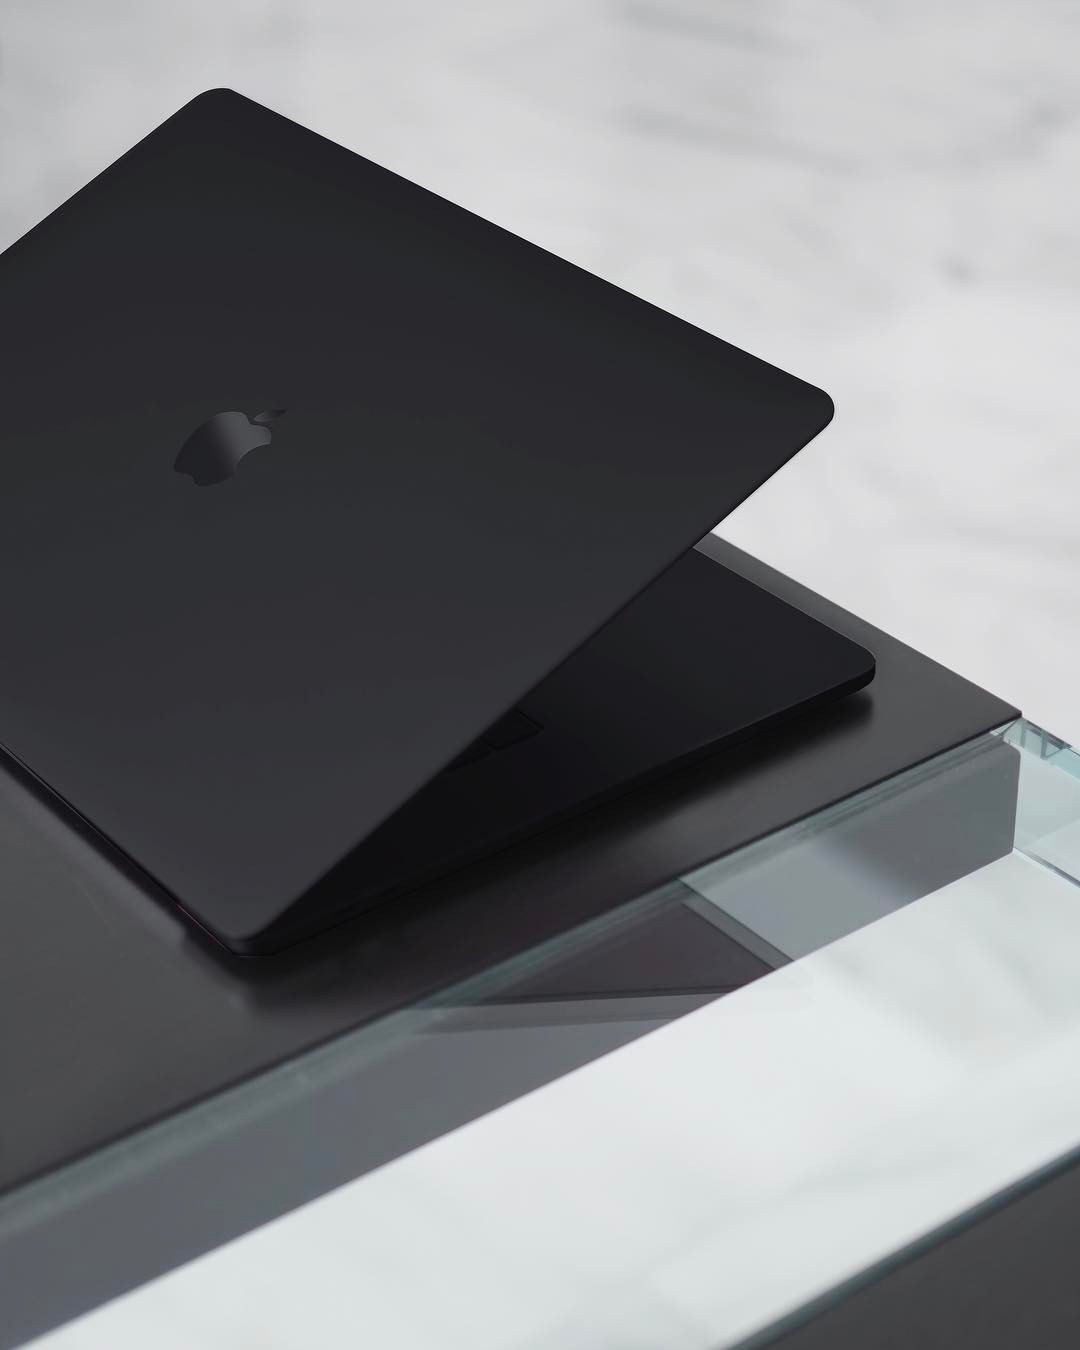 7 605 Likes 86 Comments Julian O Hayon Anckor On Instagram My Weapon Blacked Out Apple Laptop Macbook Apple Computer Laptop Apple Macbook